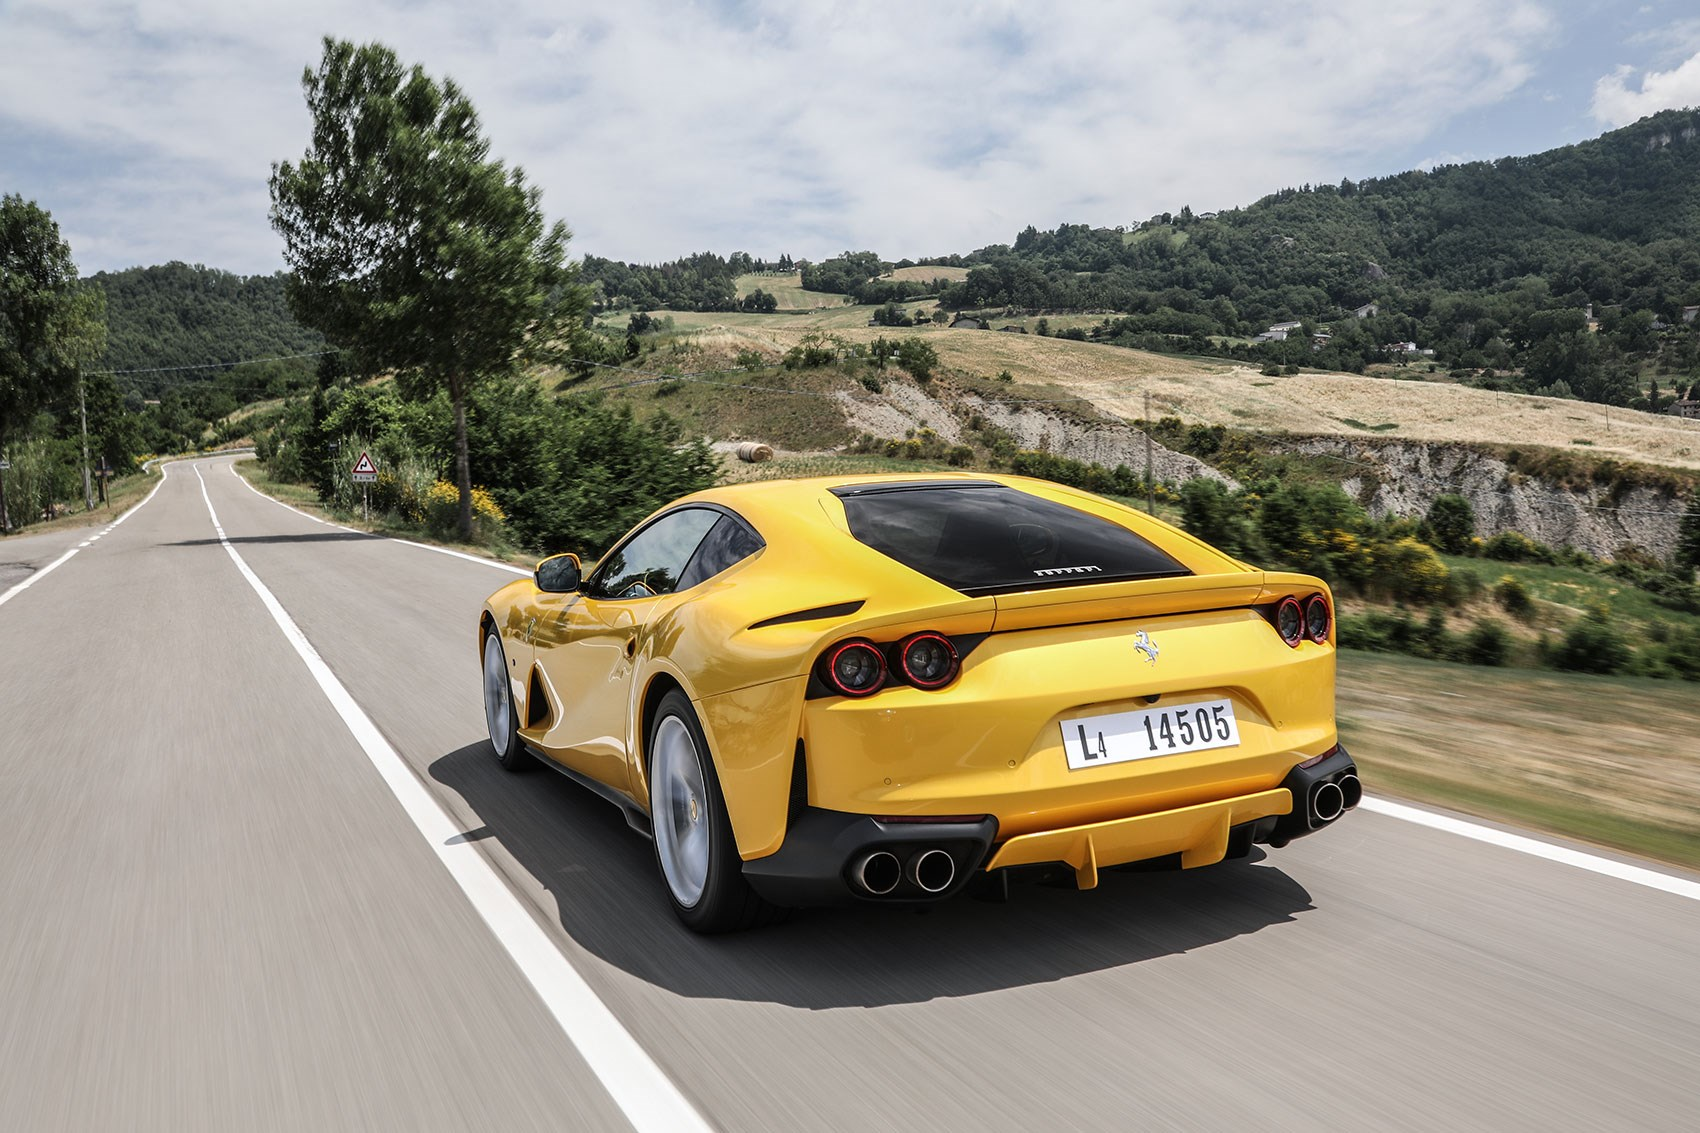 Ferrari 812 Superfast review